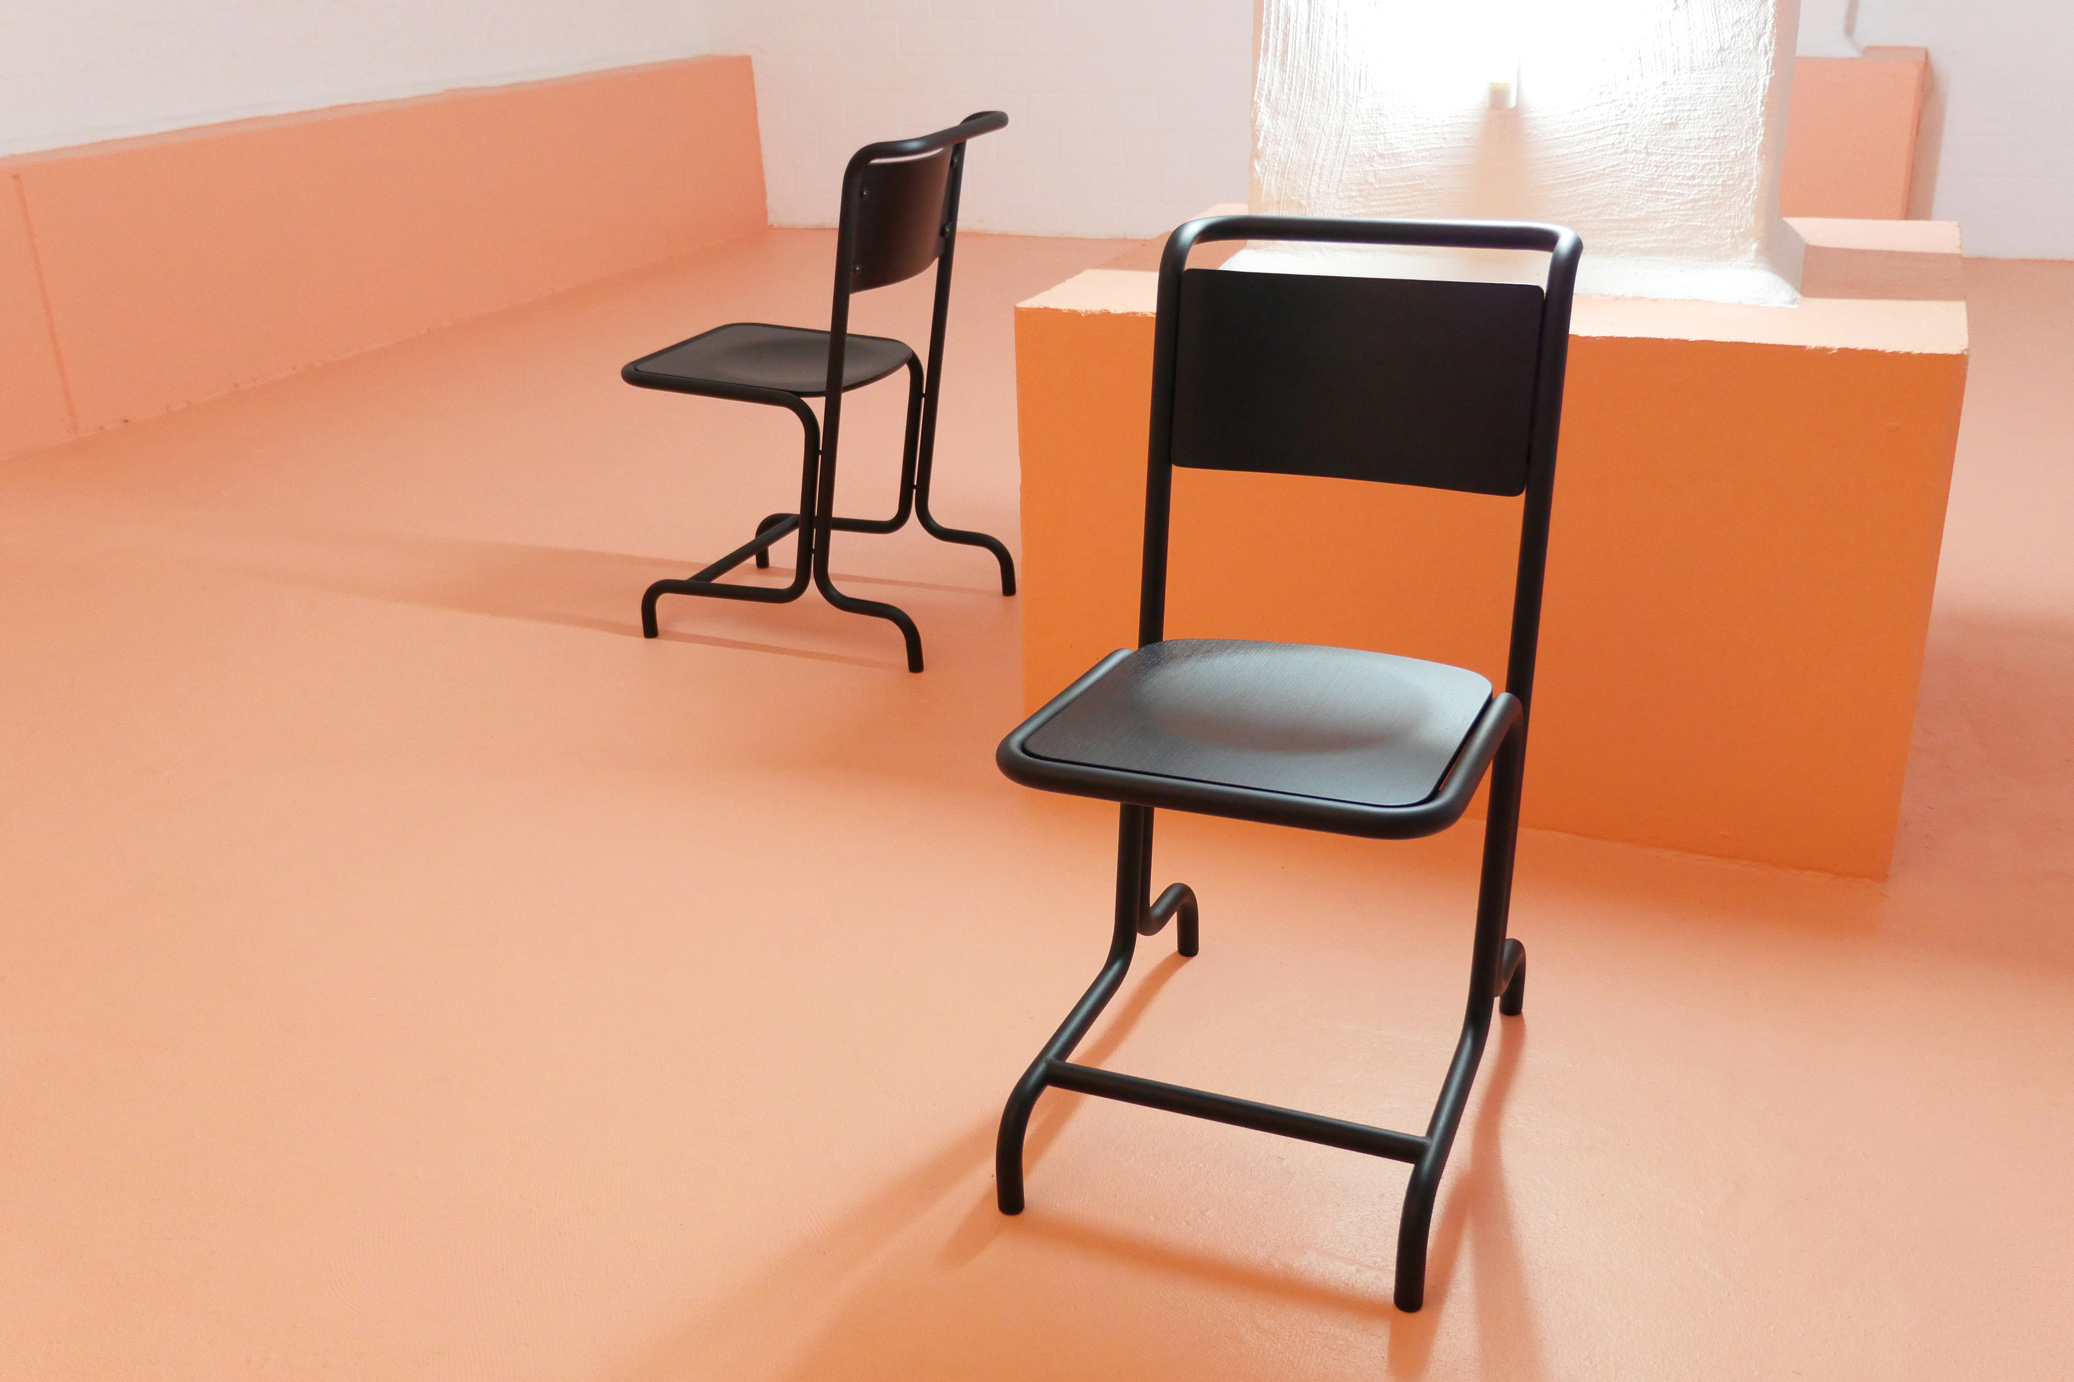 Laszlo stool by Andrew Weißert, is a iron stool